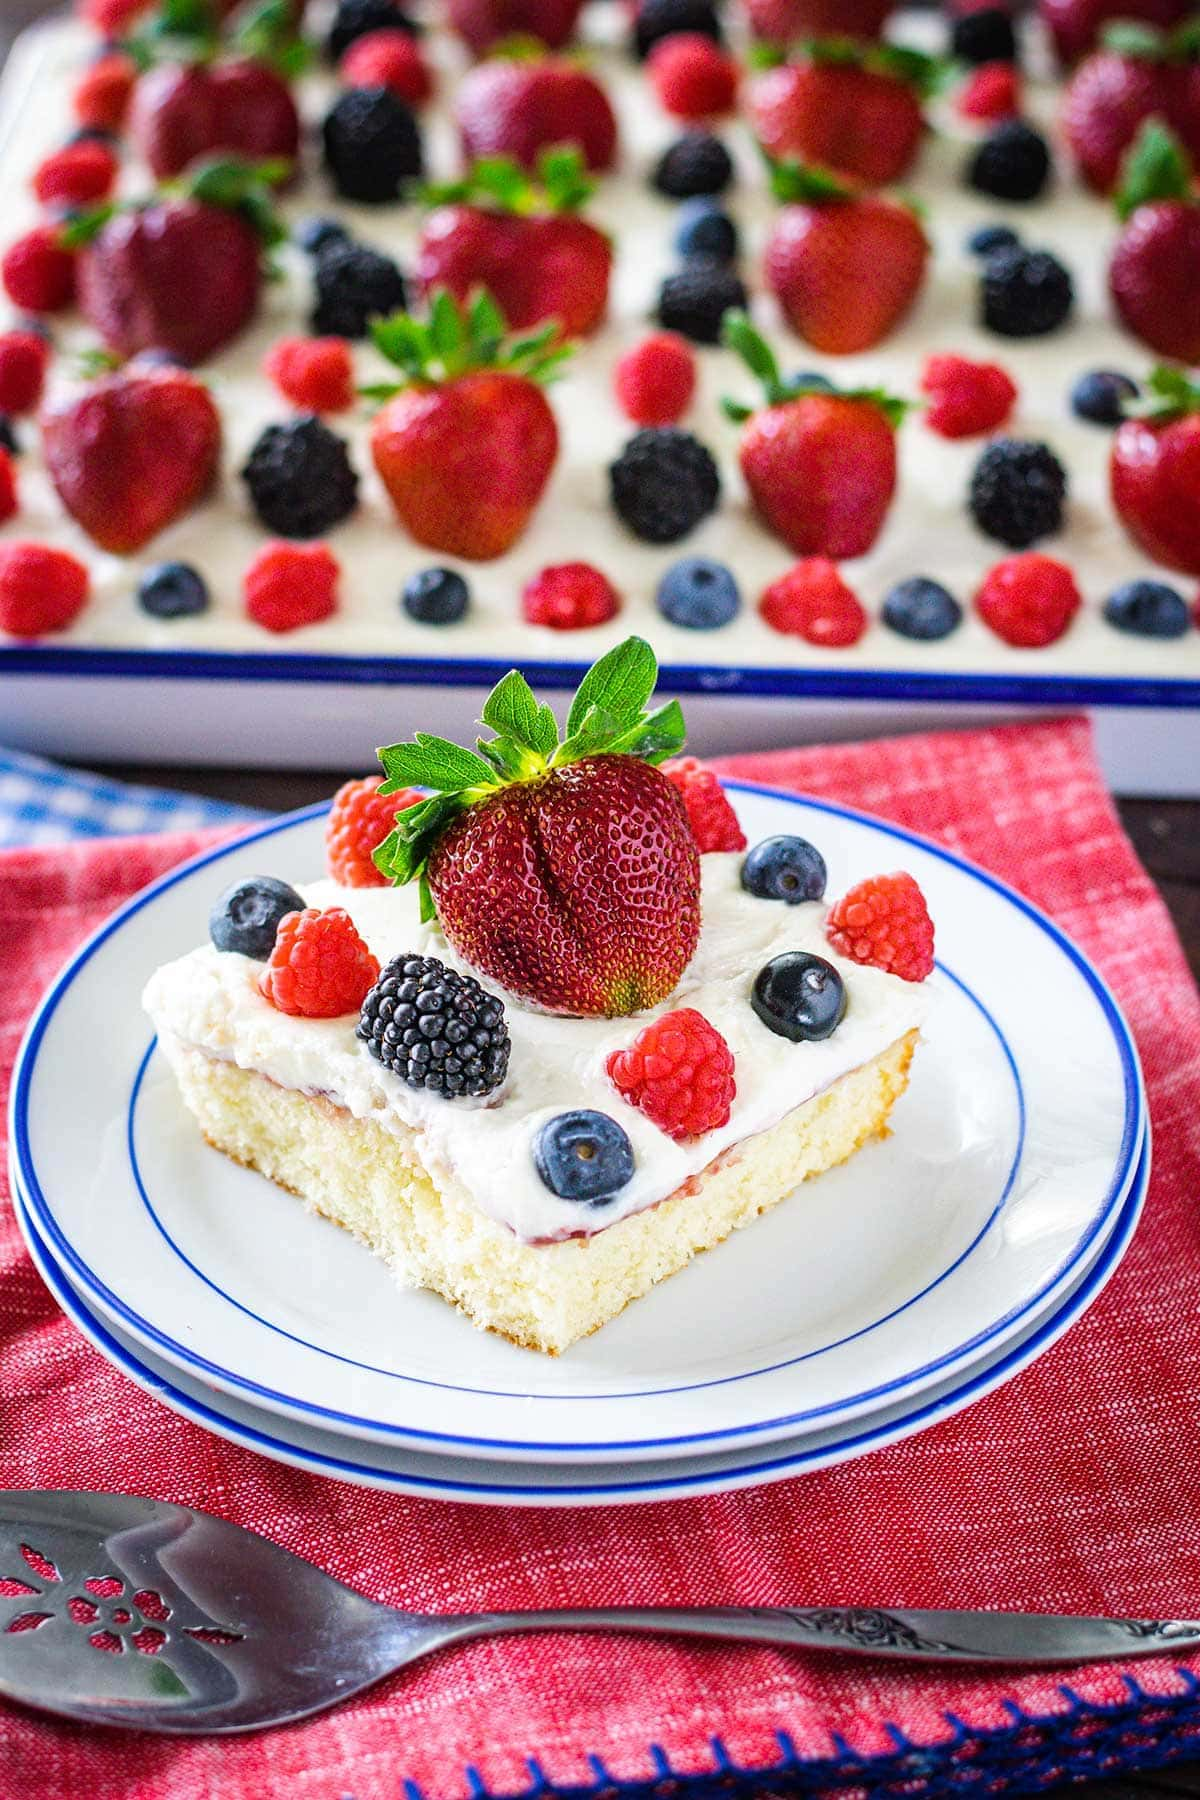 Slice of chantilly cake topped with fresh berries on a white plate with blue trim. Set on a red napkin with sheet cake in the background.